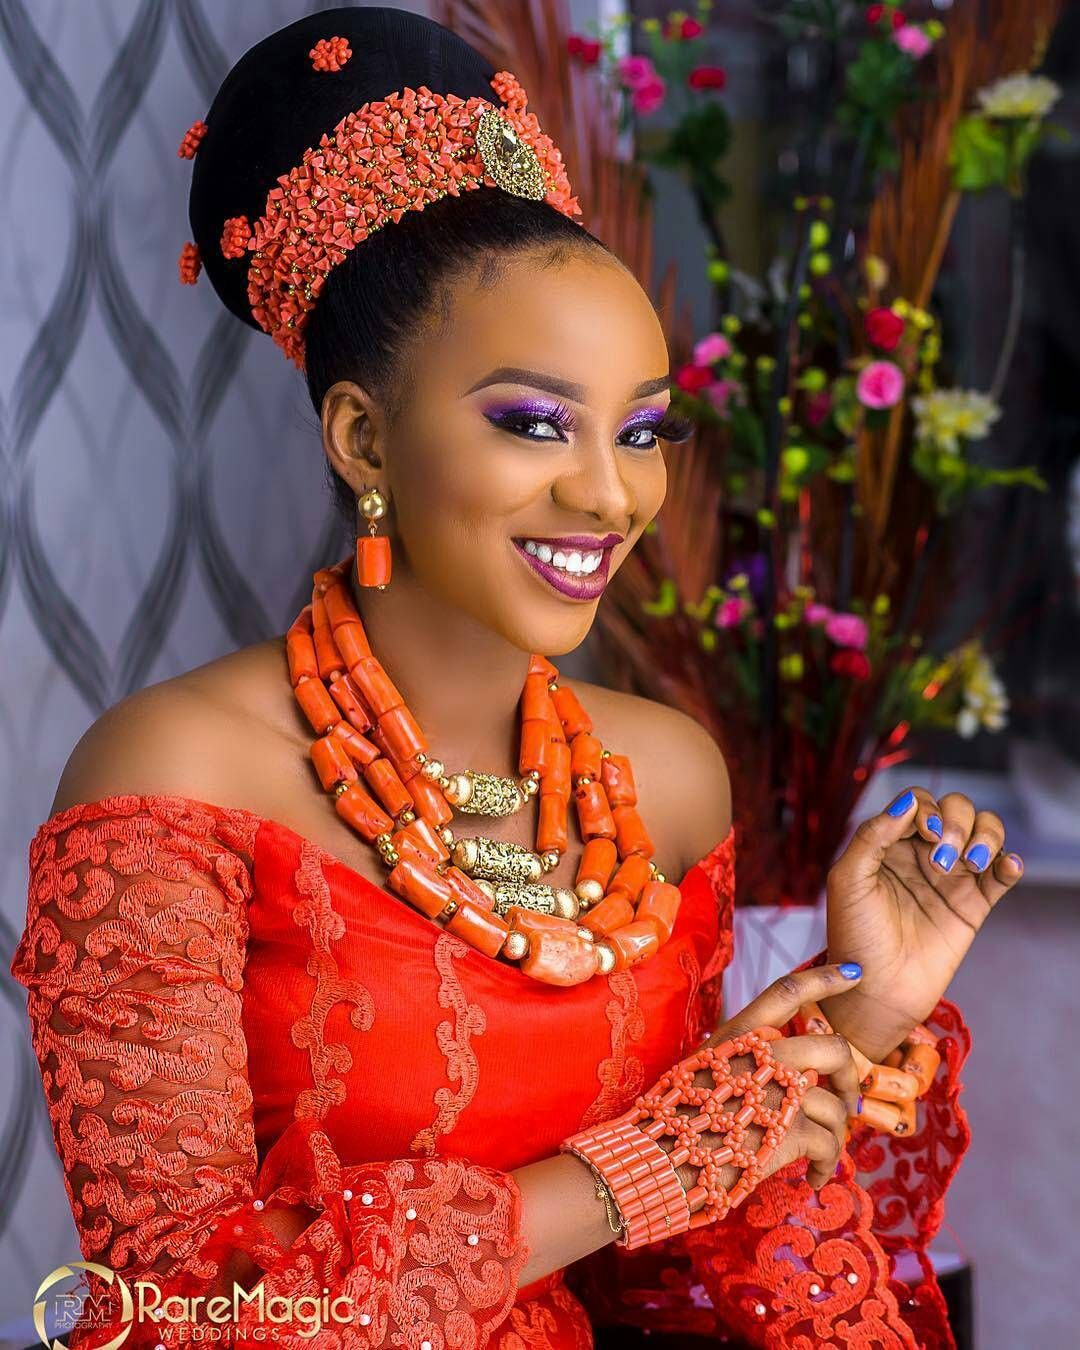 #toomuchsauce #igbo Bridal Trad Look @msyewieo Make Up By